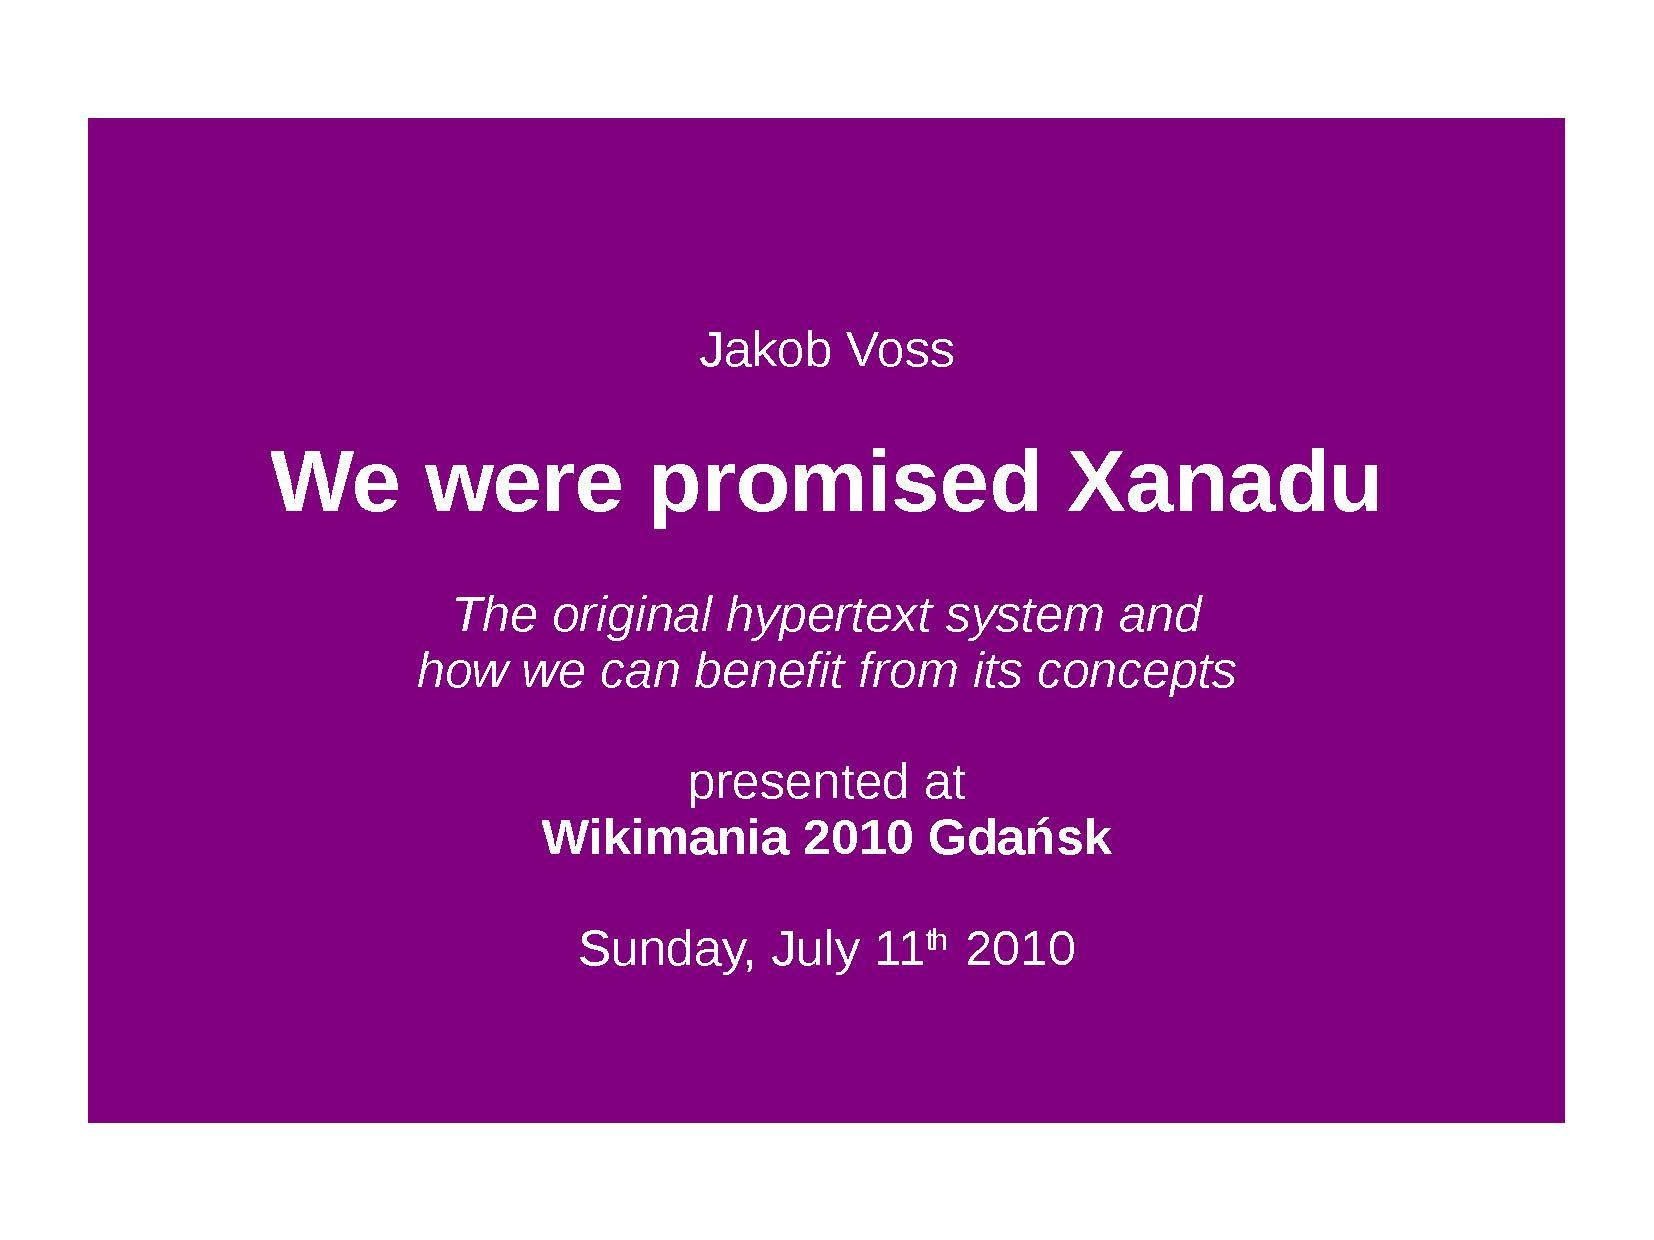 We were promised Xanadu.pdf